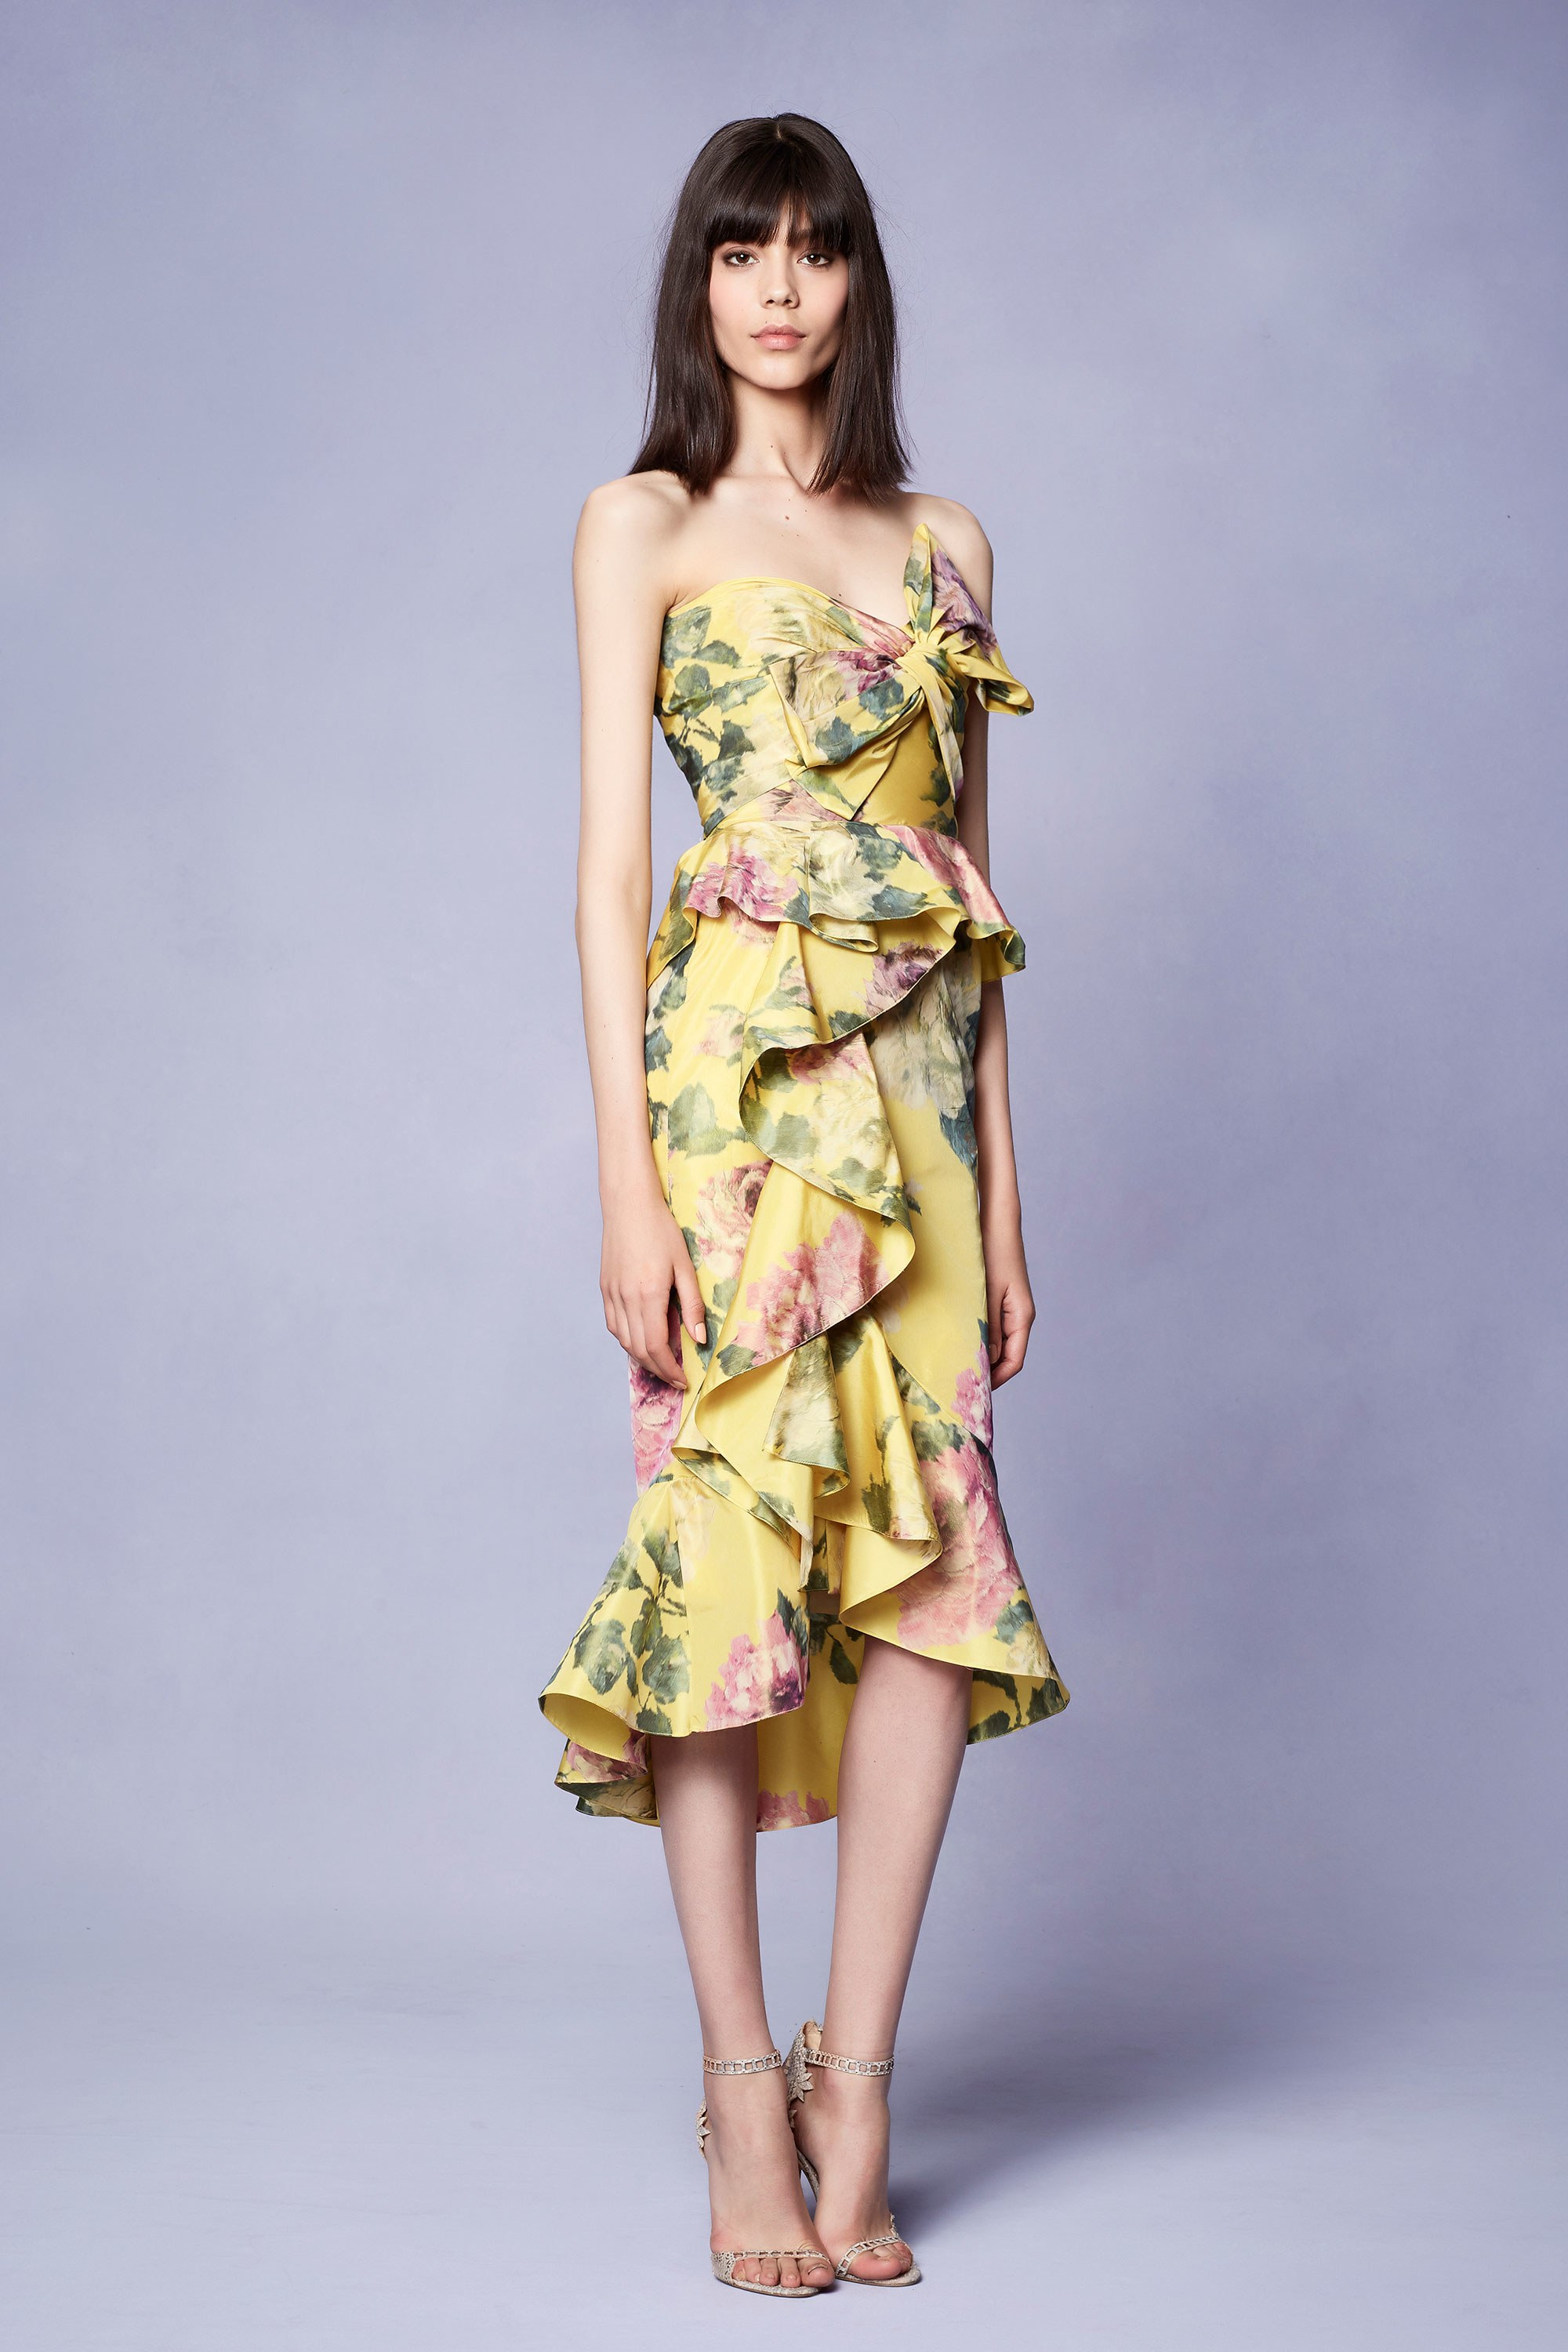 Resort 2018 Collections - Marchesa - Yellow Dress Floral Print Summer Outfit